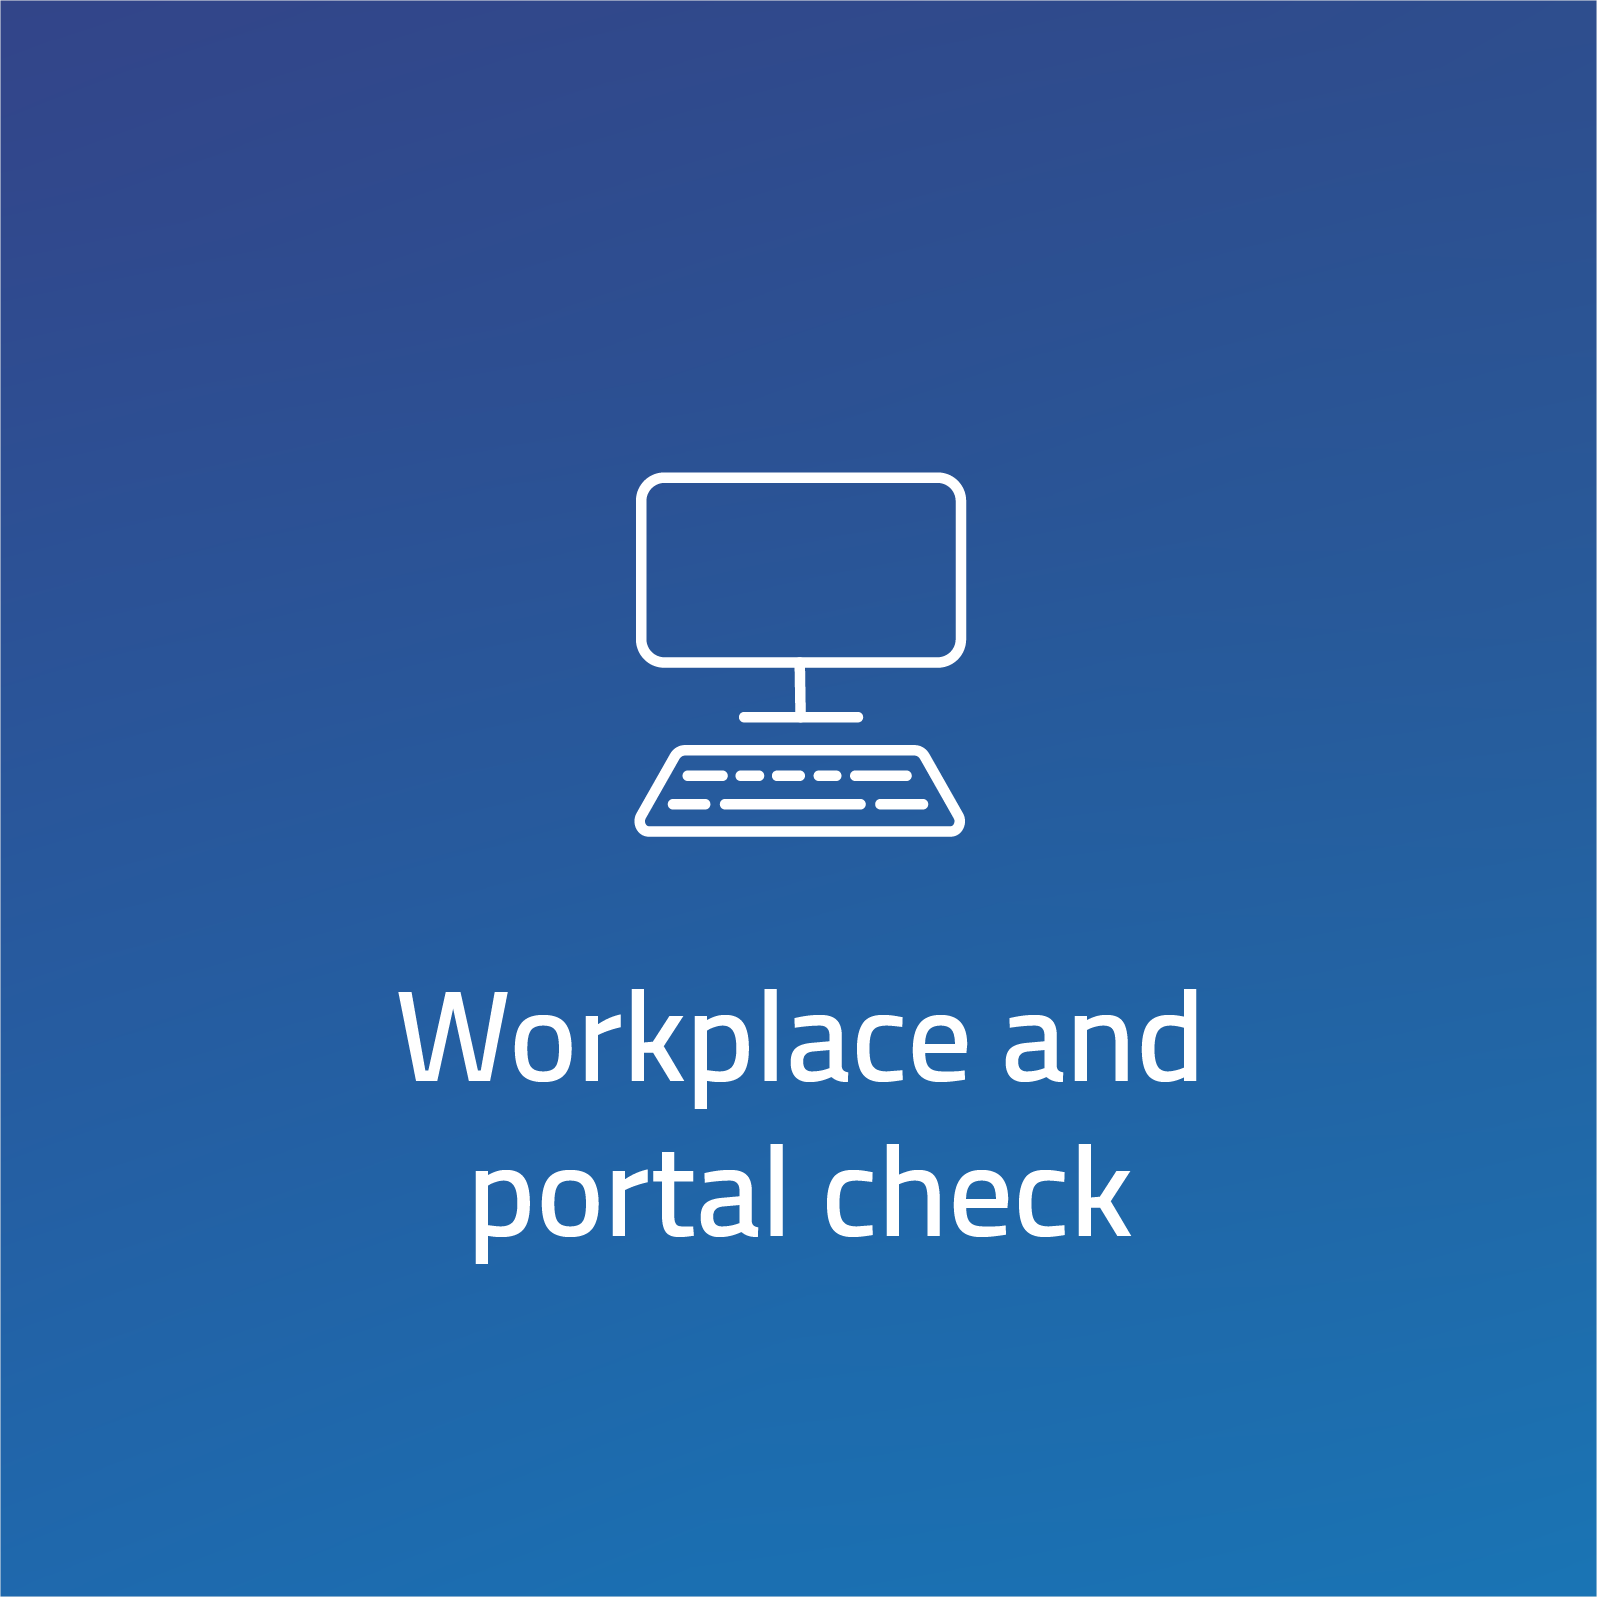 Workplace and portal check